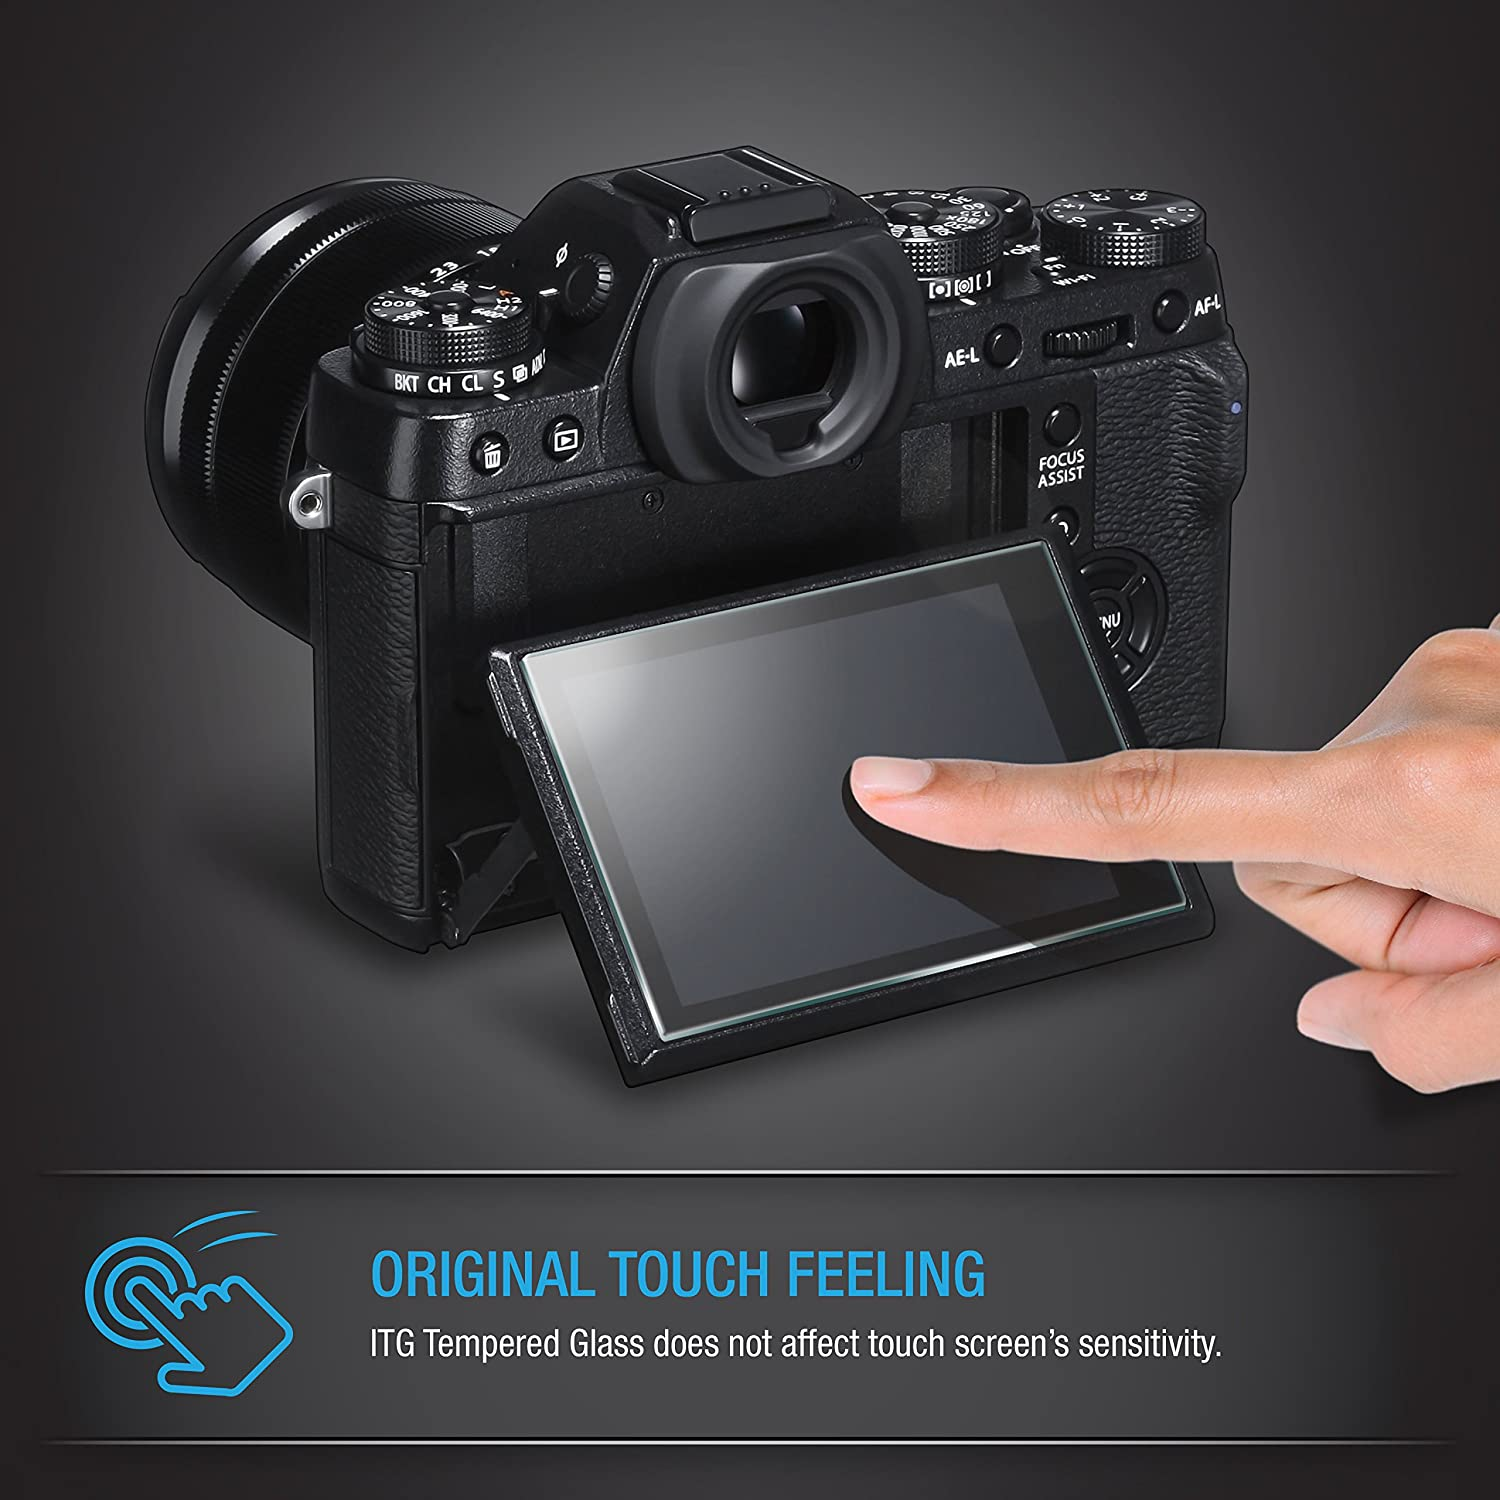 Canon EOS M3 M5 M10 100D G1 X Mark II Kiss X7 LCD Tempered Glass Camera Screen Protector Patchworks ITG 9H Hardness Oleophobic Coated Smooth Surface Anti-Scratch Anti-Fingerprint Tempered Glass